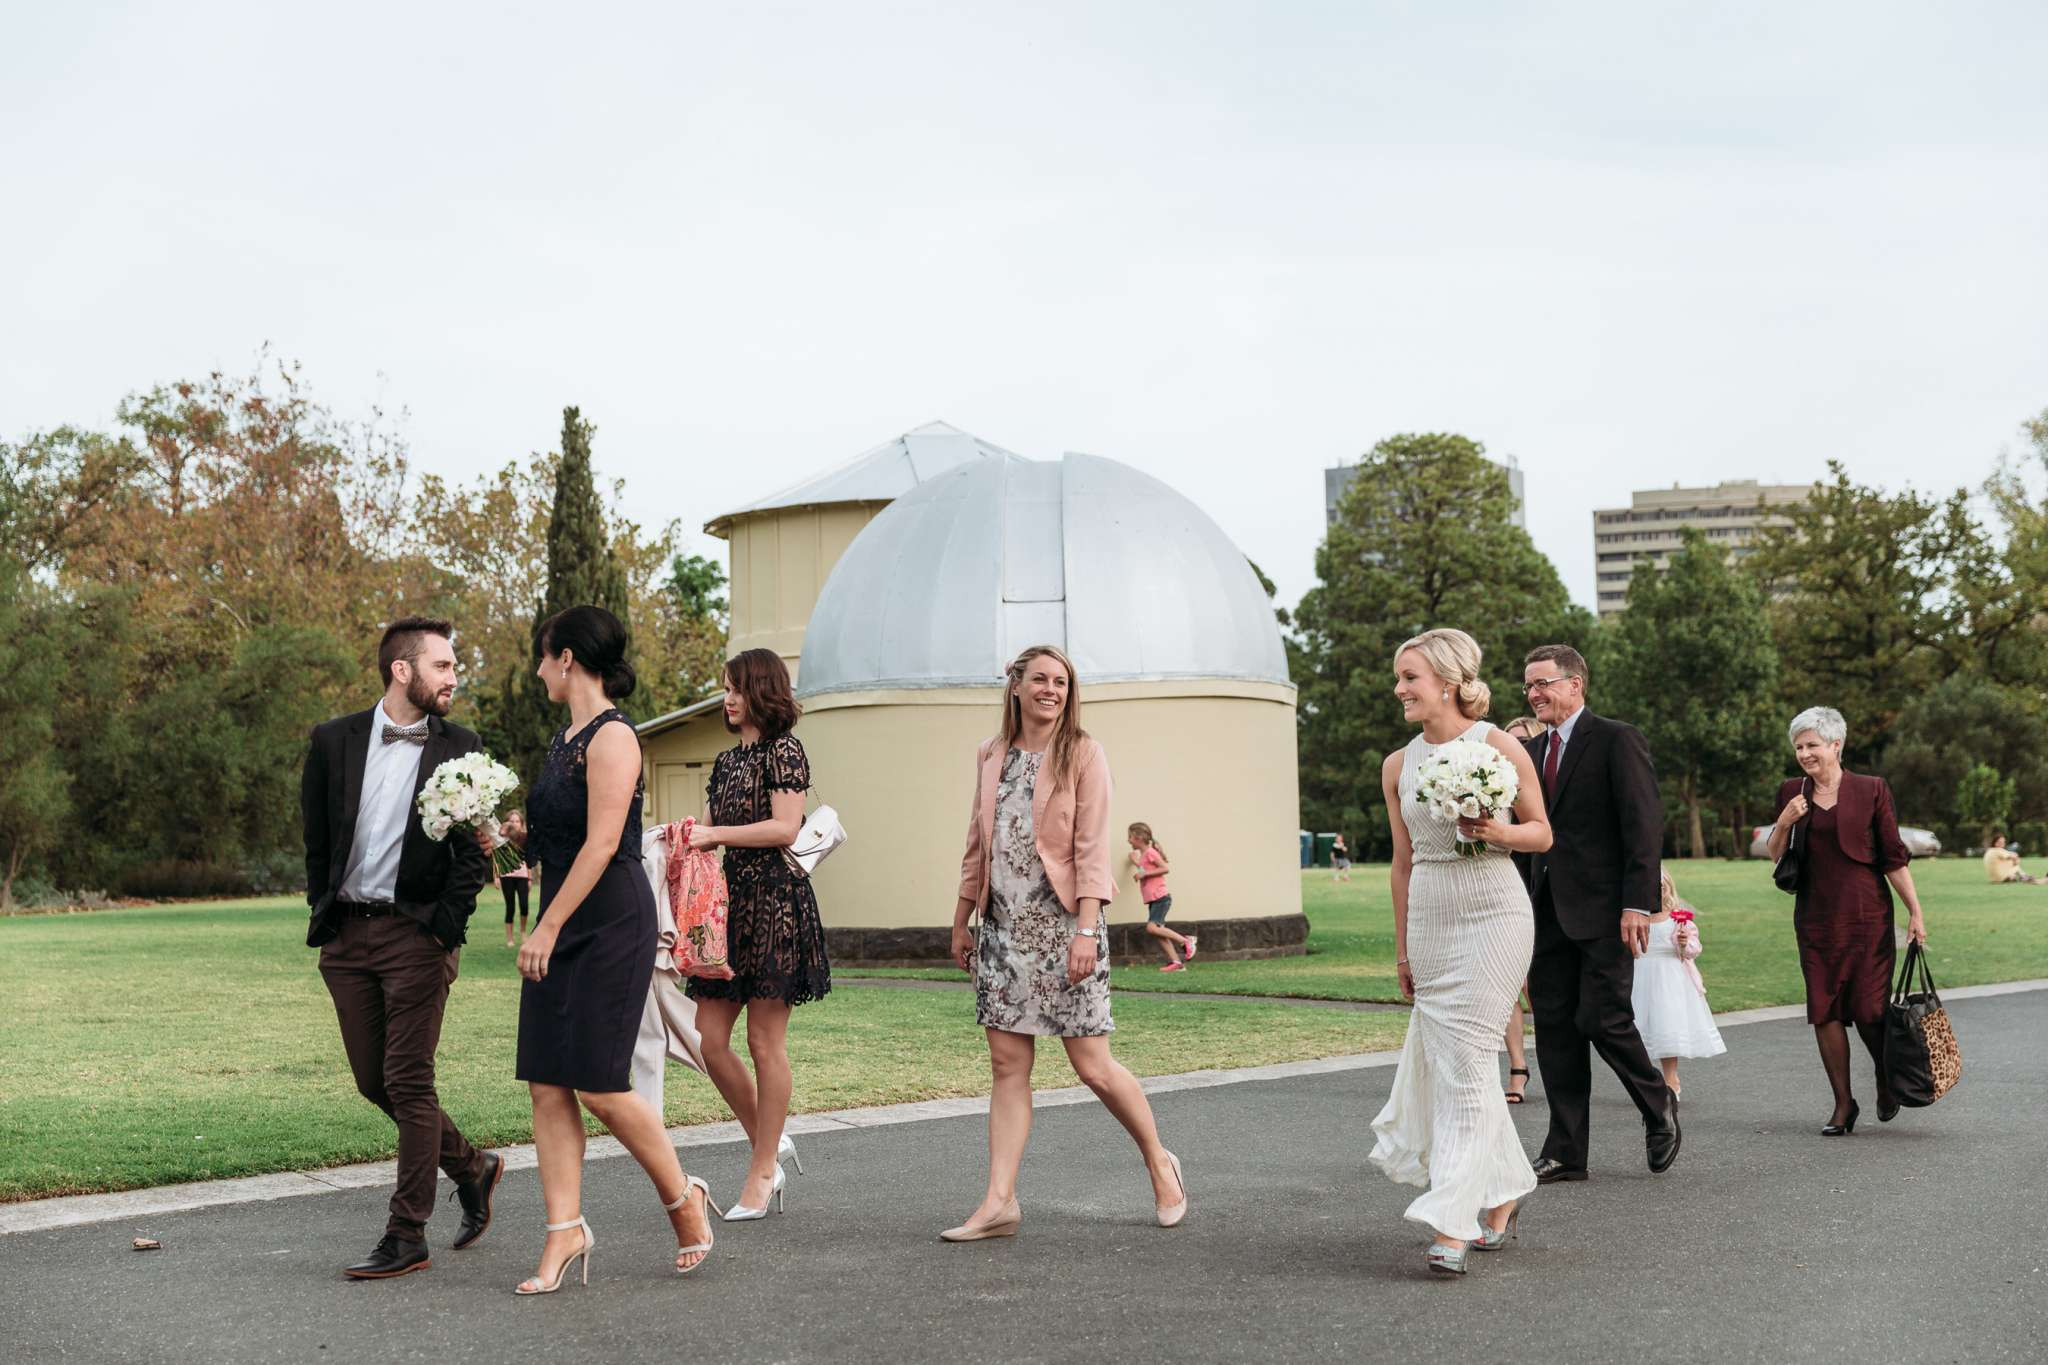 Wedding Photography Melbourne - Max & Megan 102